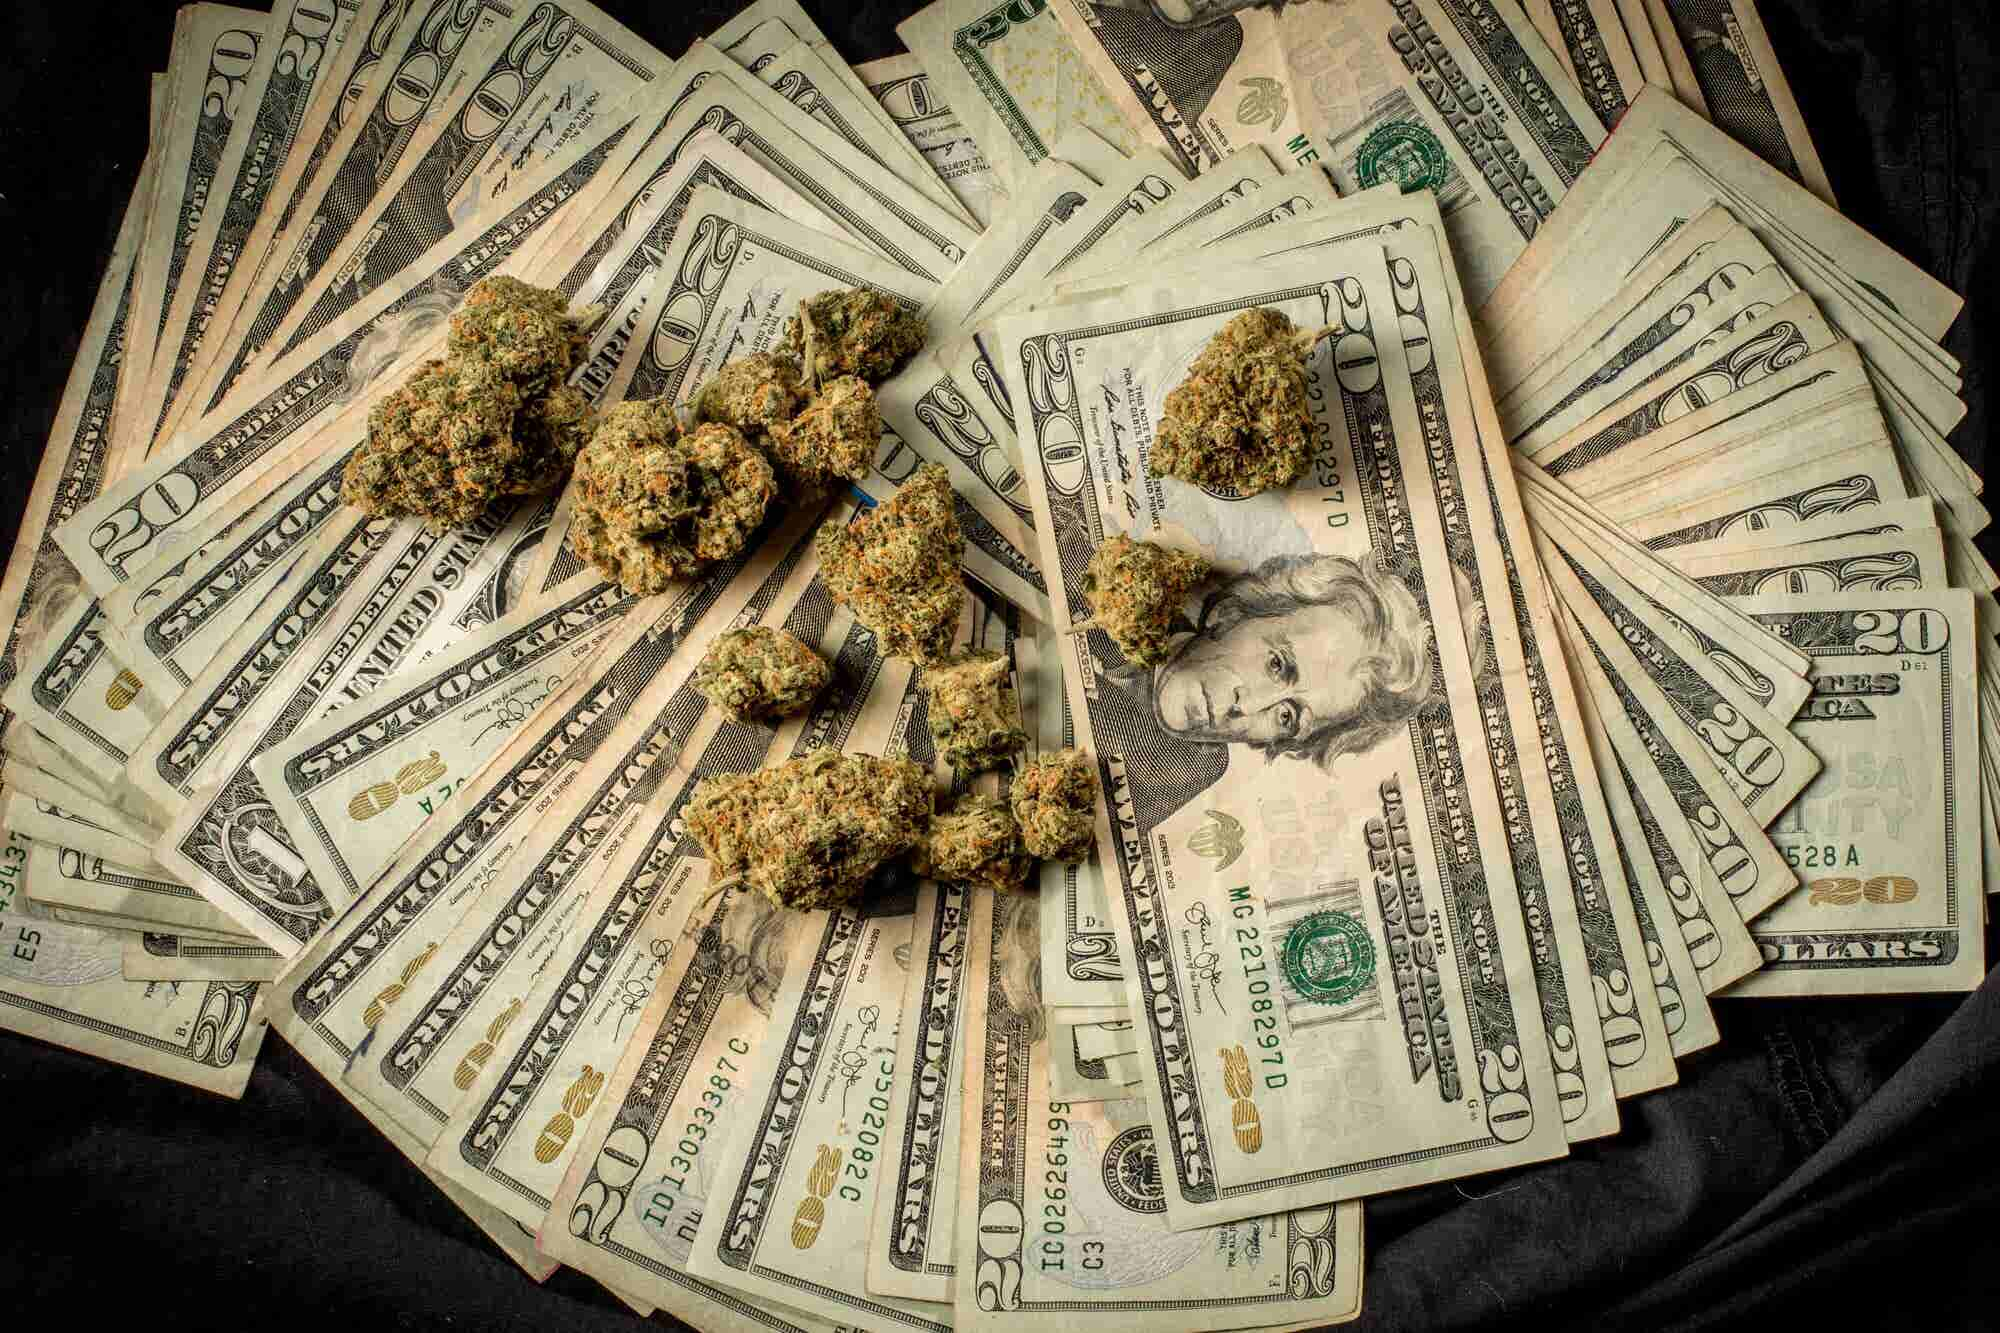 What Will Happen if the U.S. Legalizes Pot Like Canada? A Mind-Boggling Economic Boon, That's What.